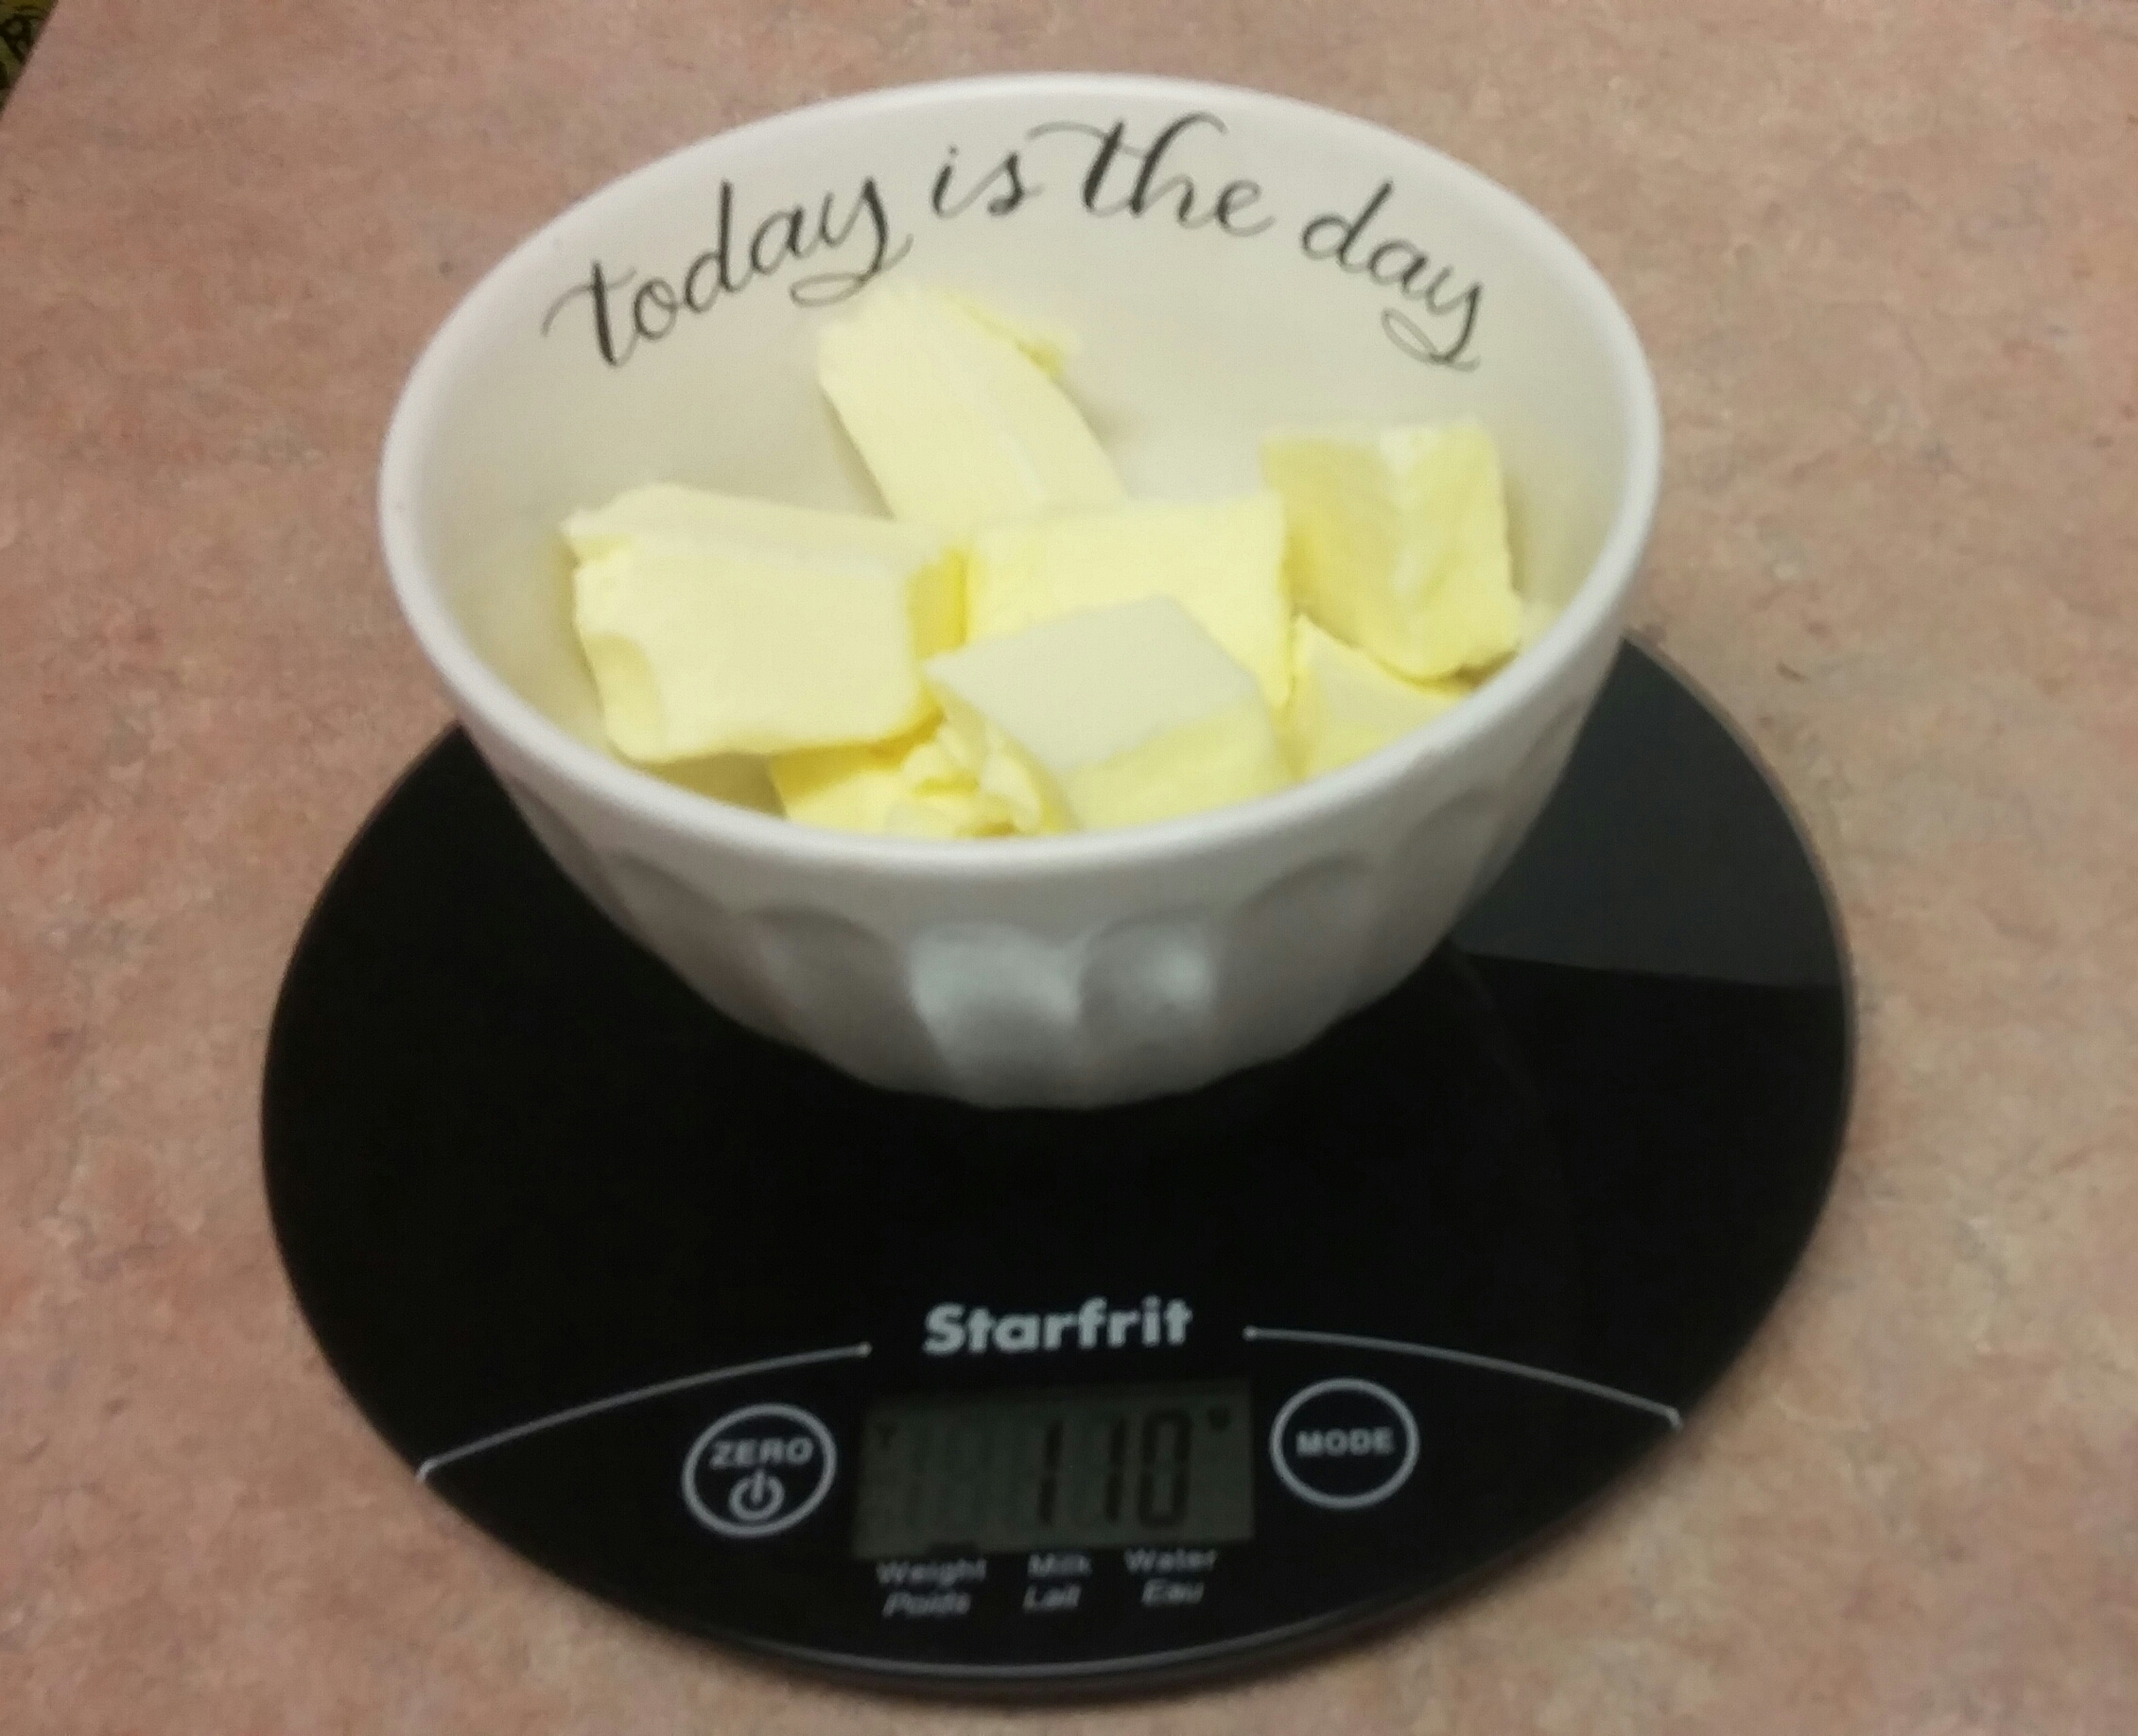 I eyeballed the butter to within 3 grams of the weight needed. *does victory dance*